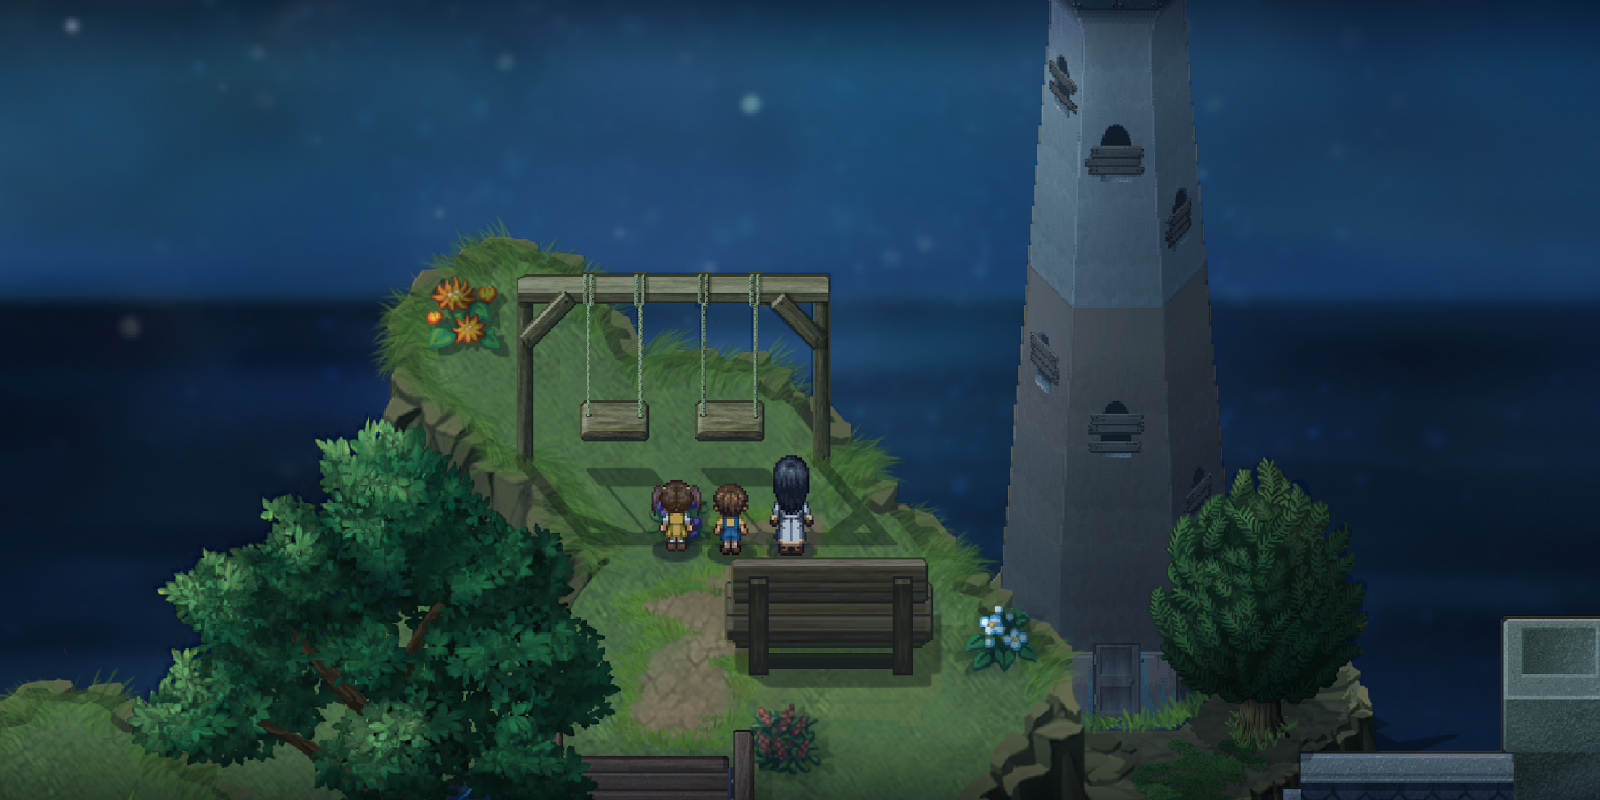 Head To The Moon and back in this story-driven RPG for iOS, now $2 on the App Store (Reg. $5)